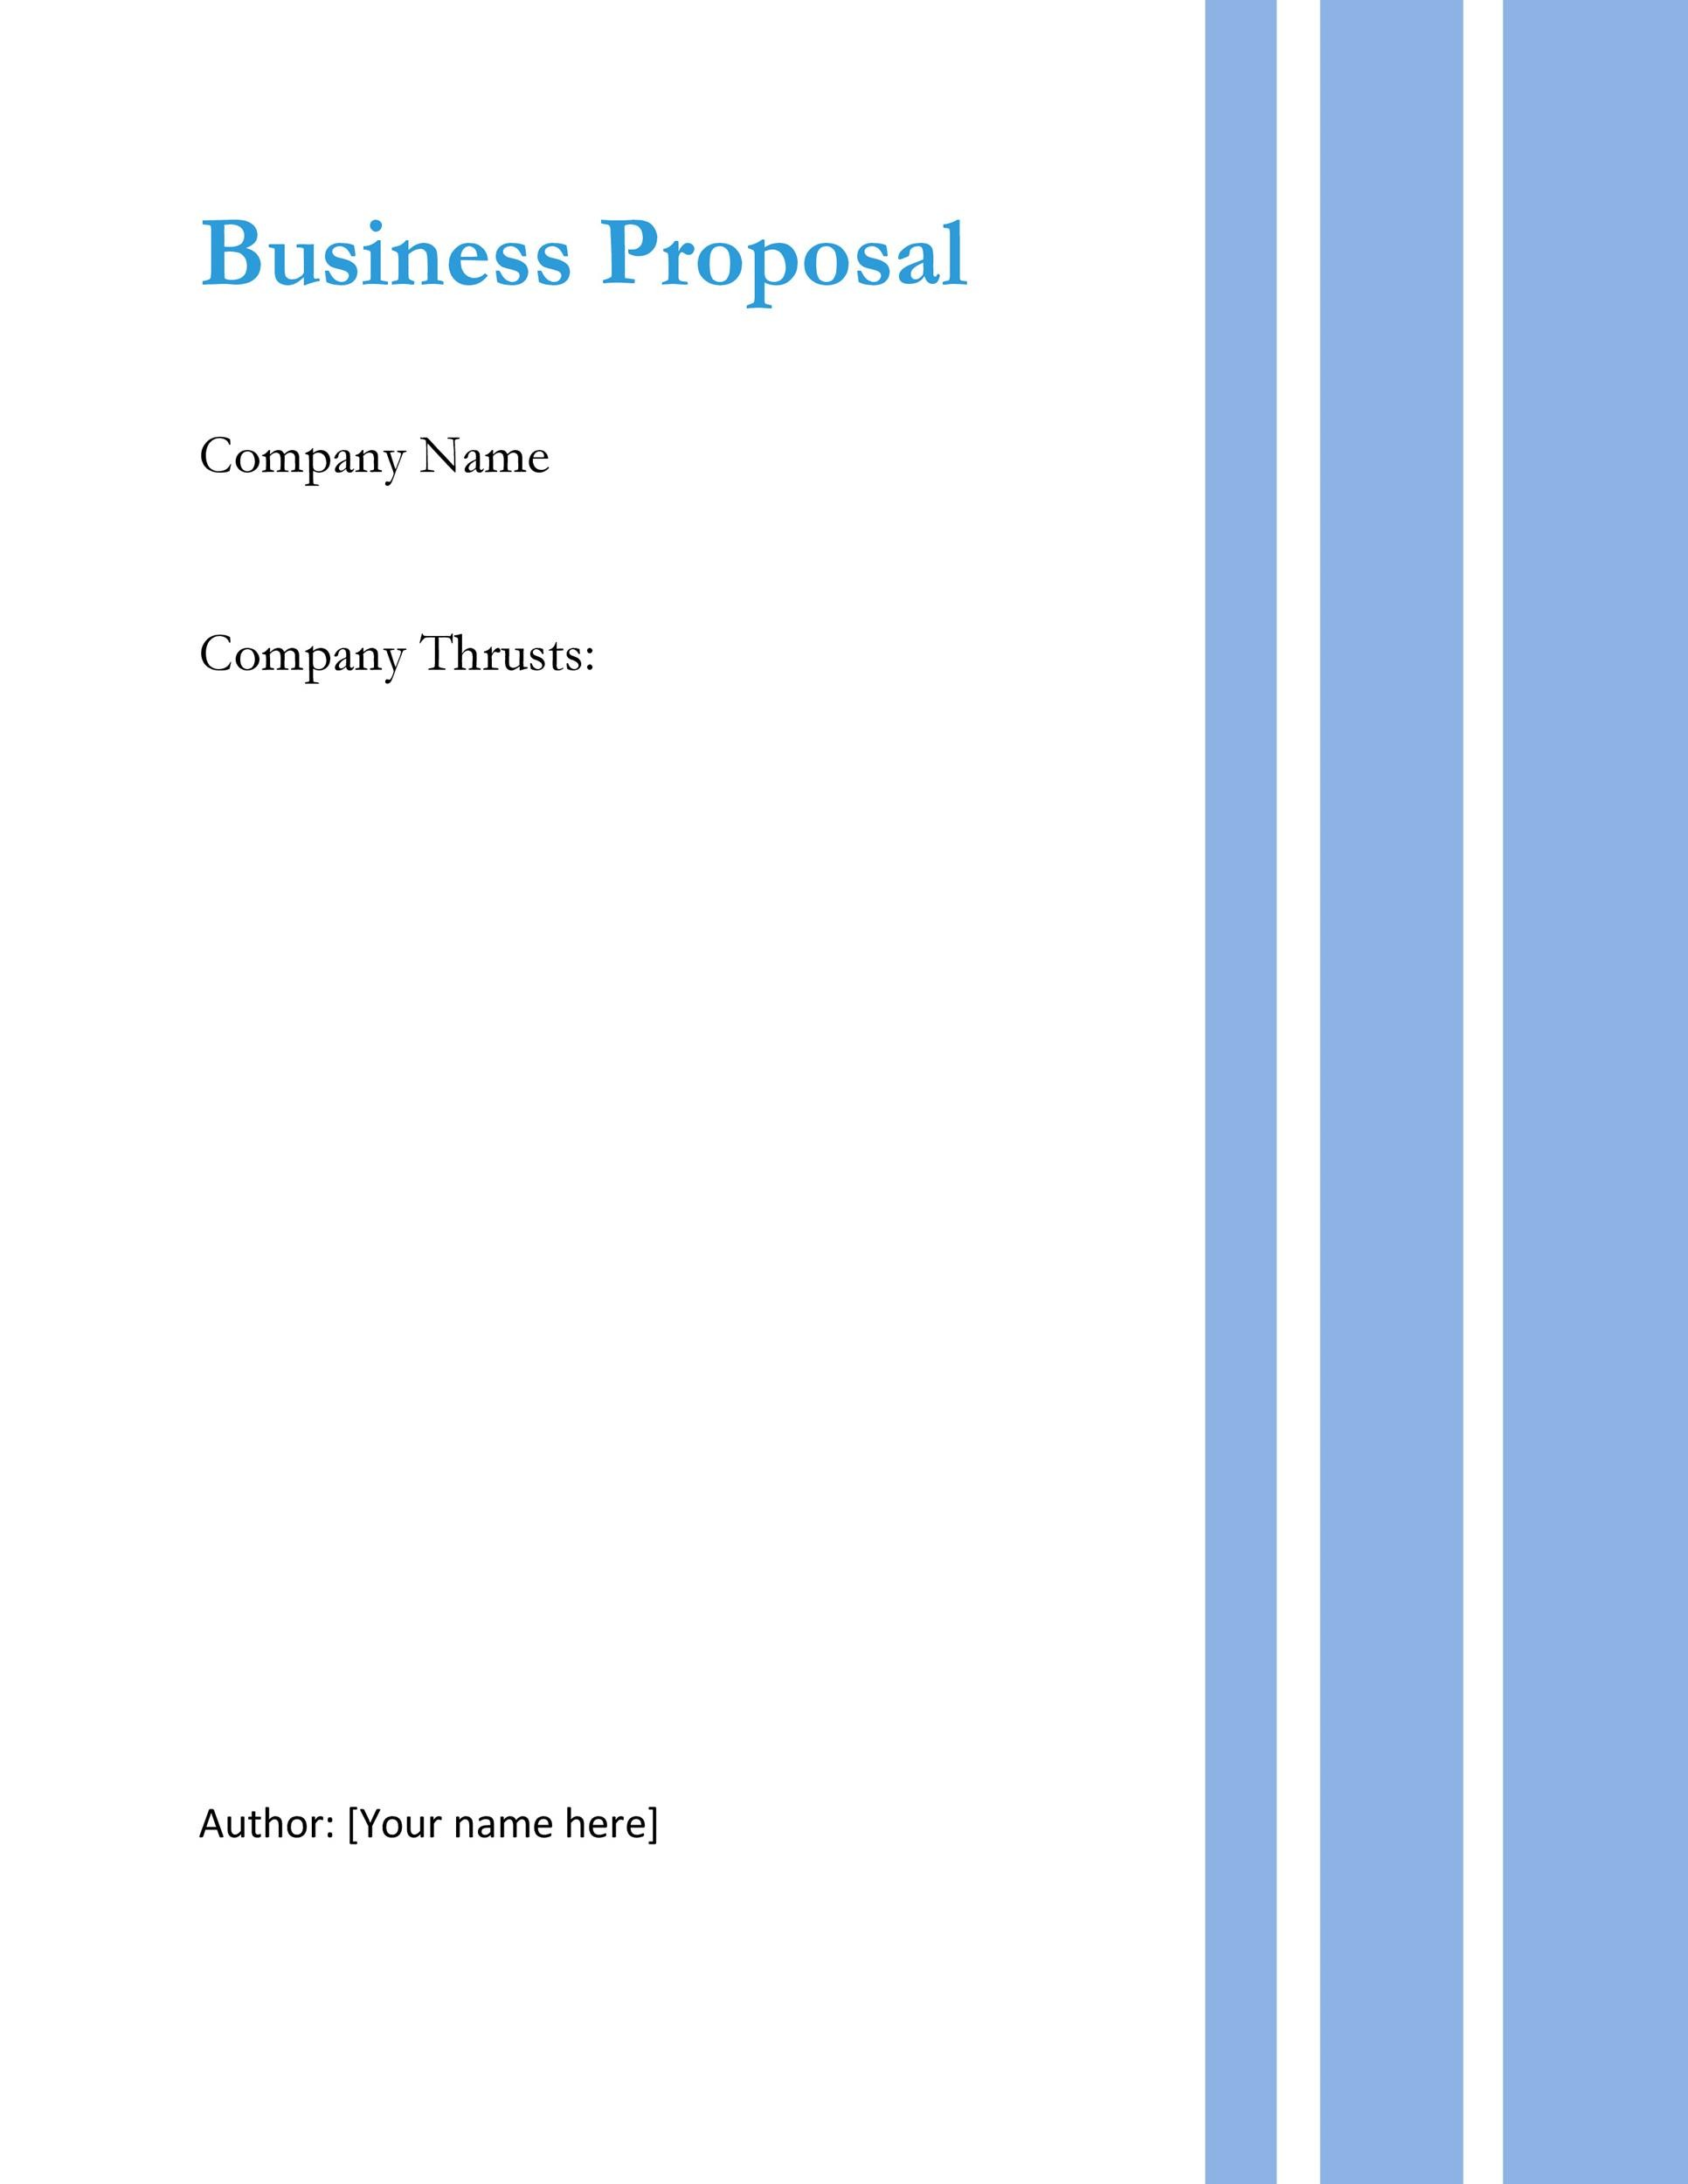 Business proposal Template 15